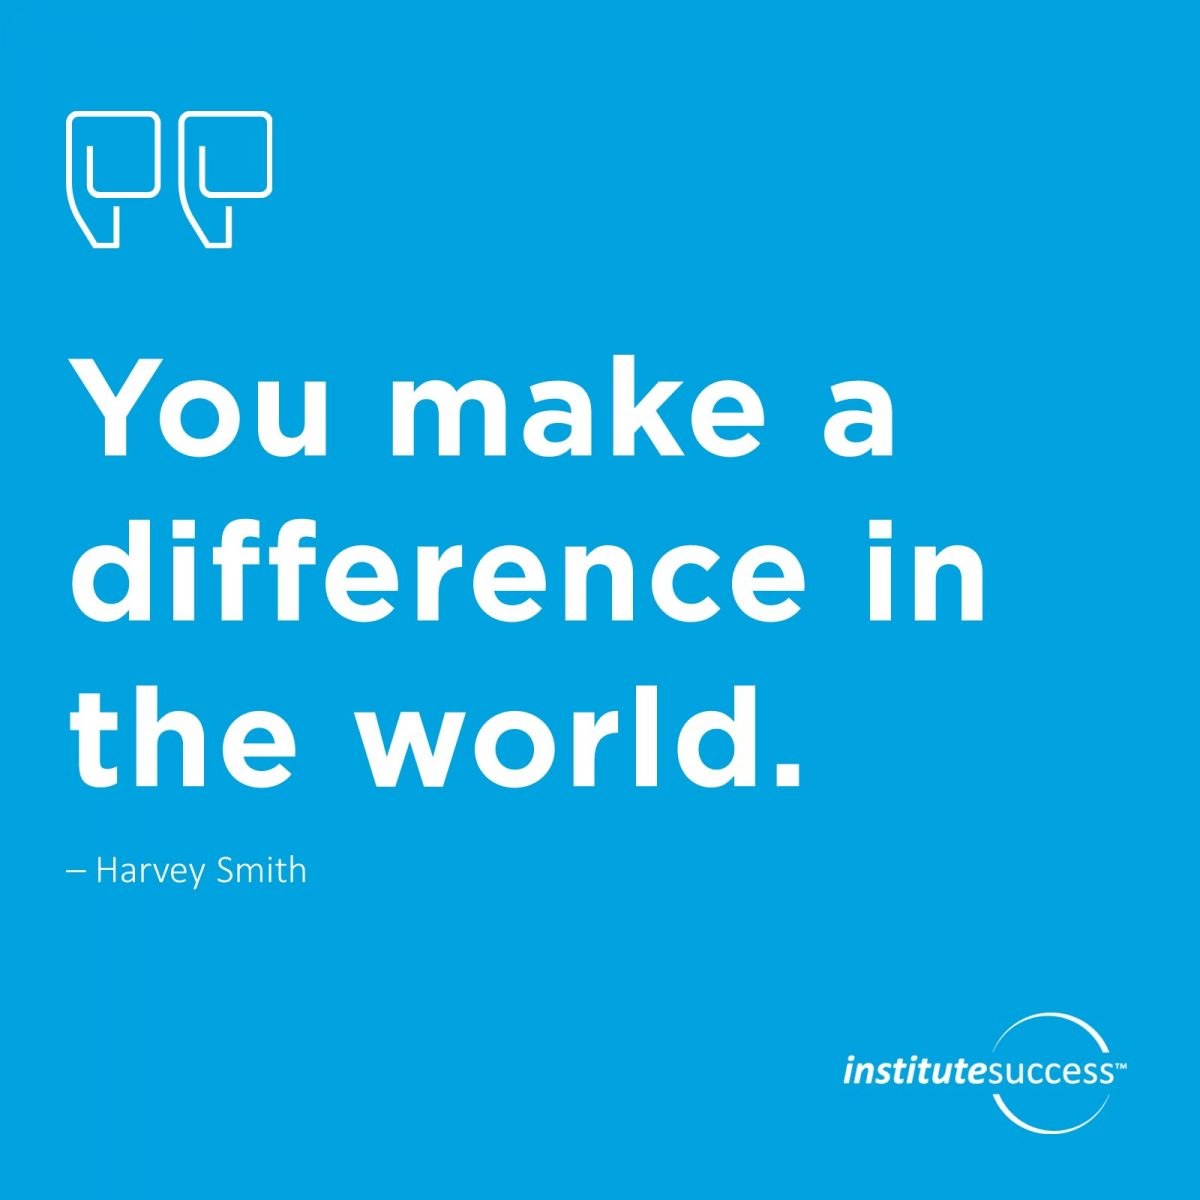 You make a difference in the world – Harvey Smith